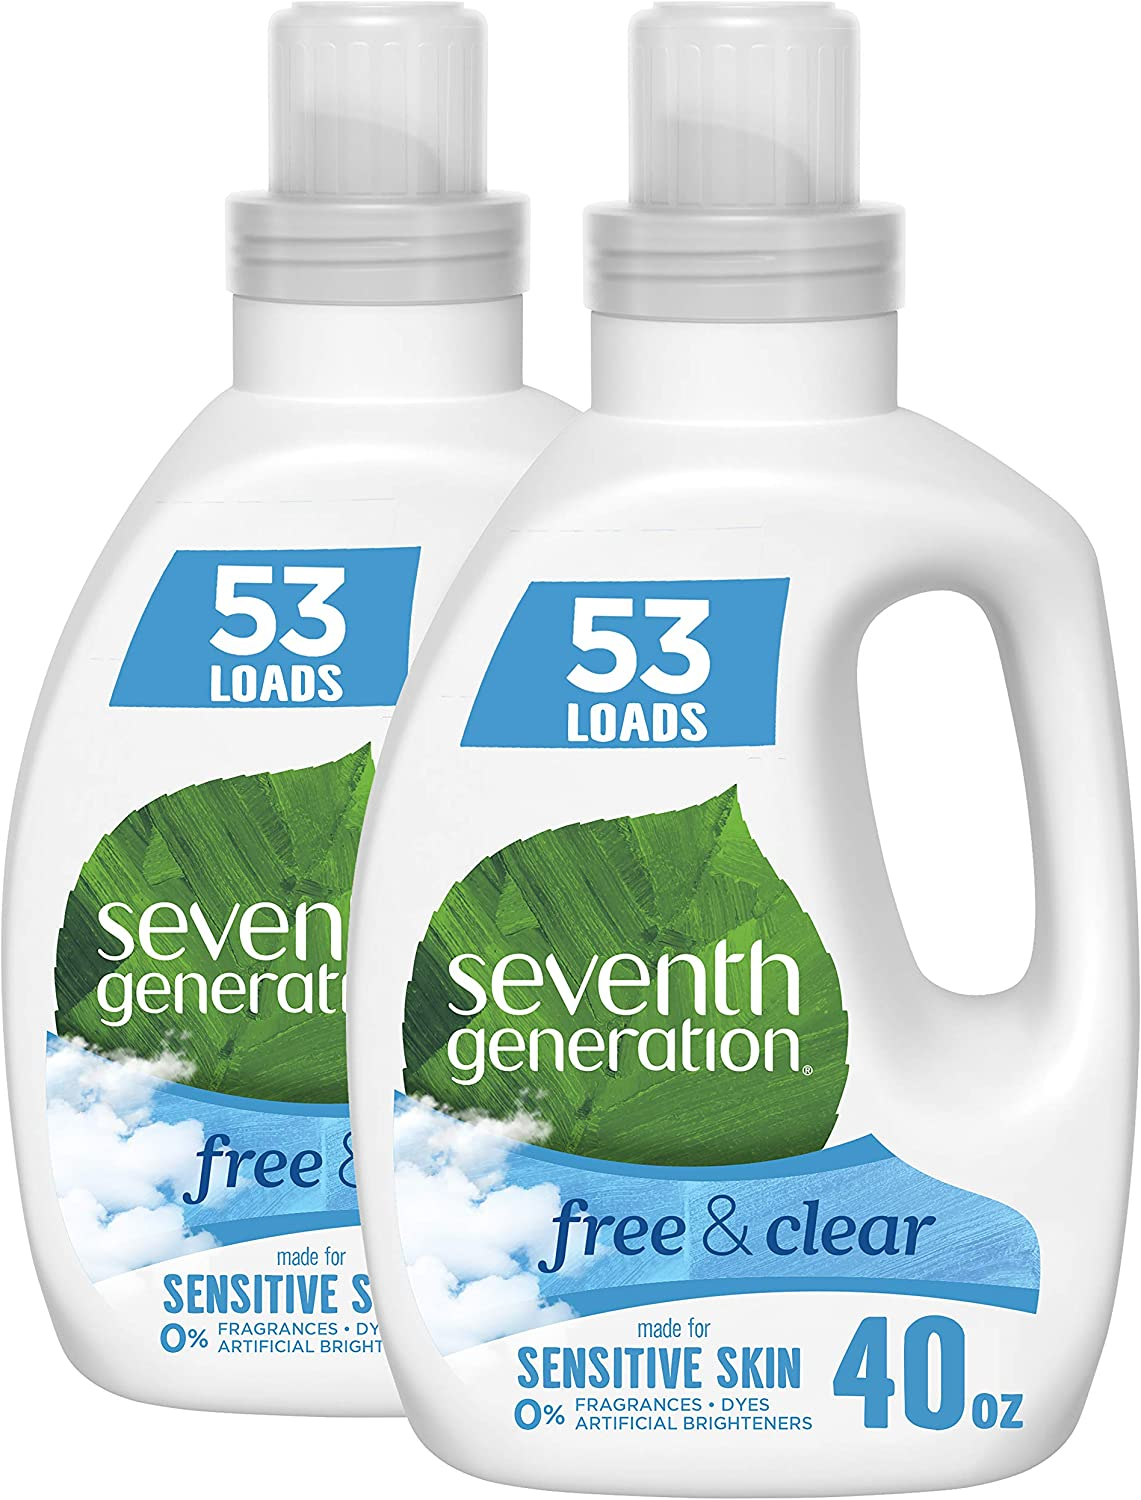 Seventh Generation Concentrated Laundry Detergent, Free & Clear Unscented, 40 oz, Pack of 2 (106 Loads): Health & Personal Care